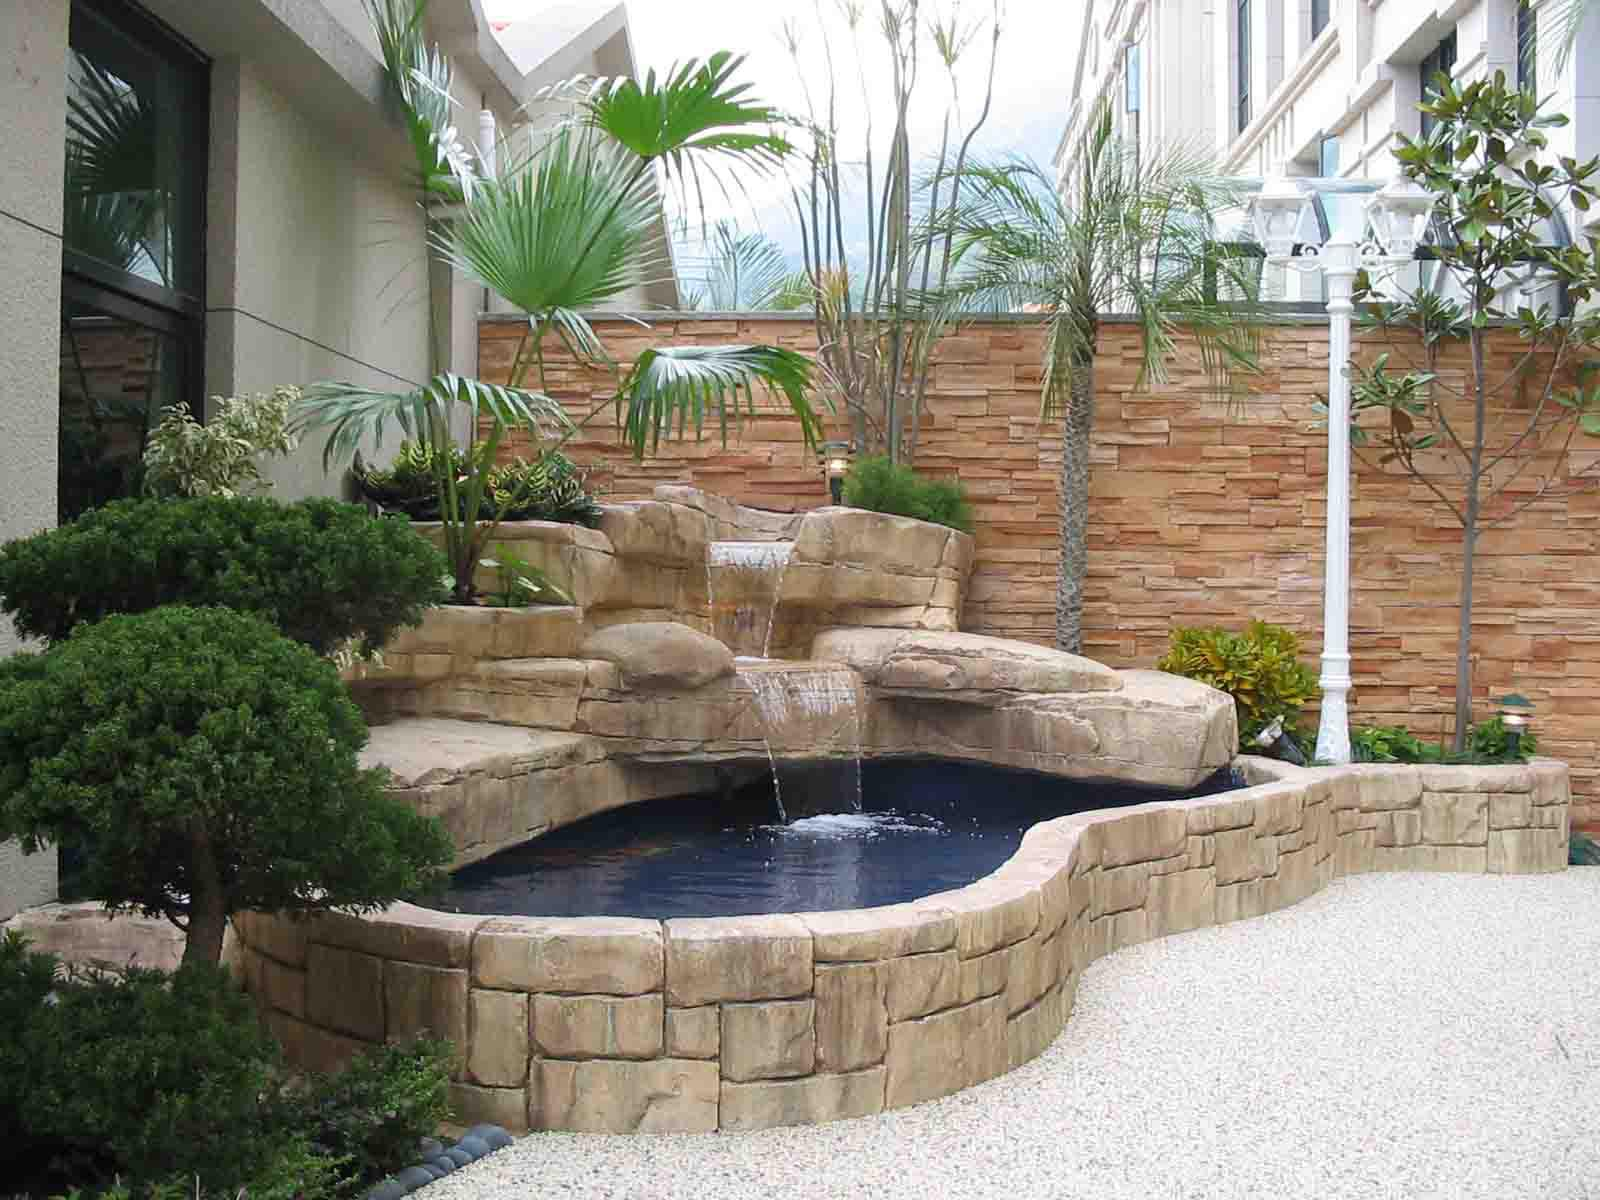 Fish pond garden design backyard design ideas for Small pond ideas pictures